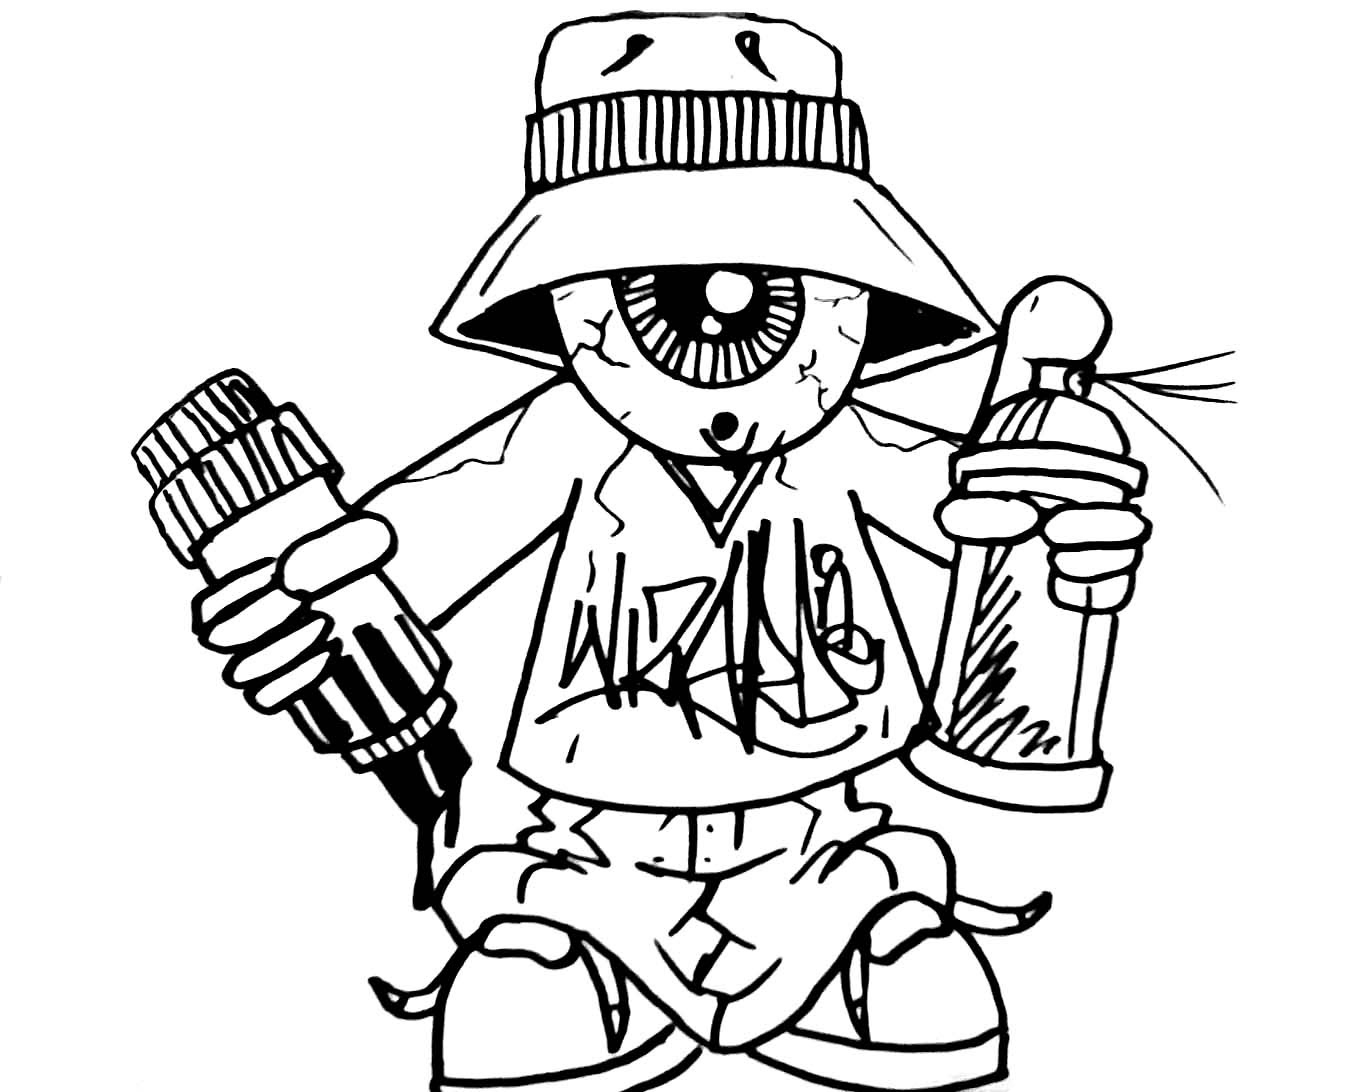 Graffiti Coloring Pages For Teens And Adults Best Coloring